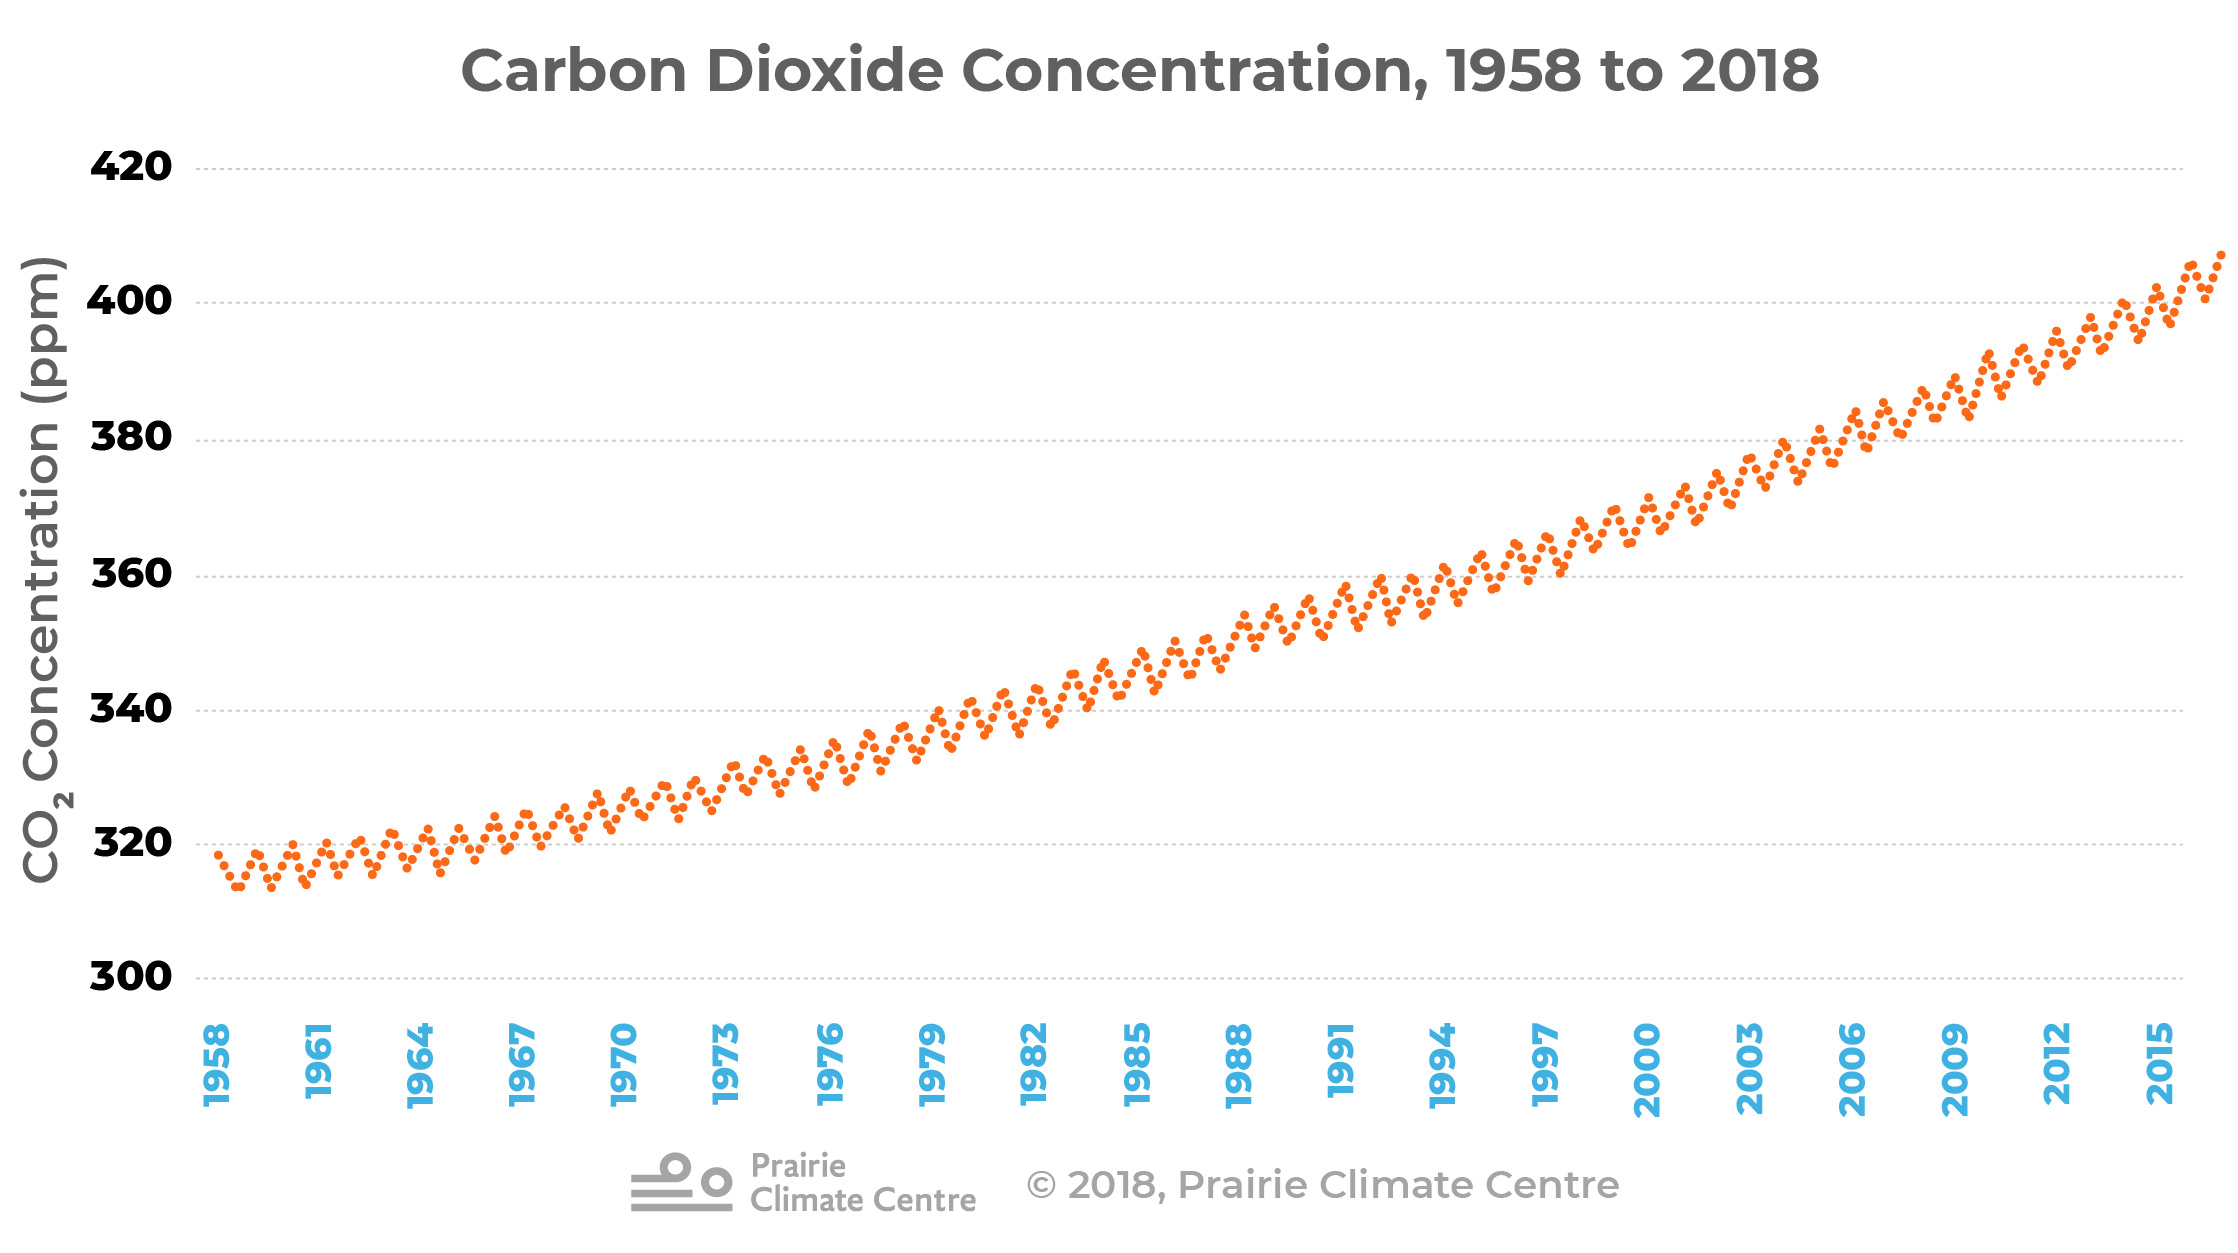 CO2 Concentration, 1958-2018